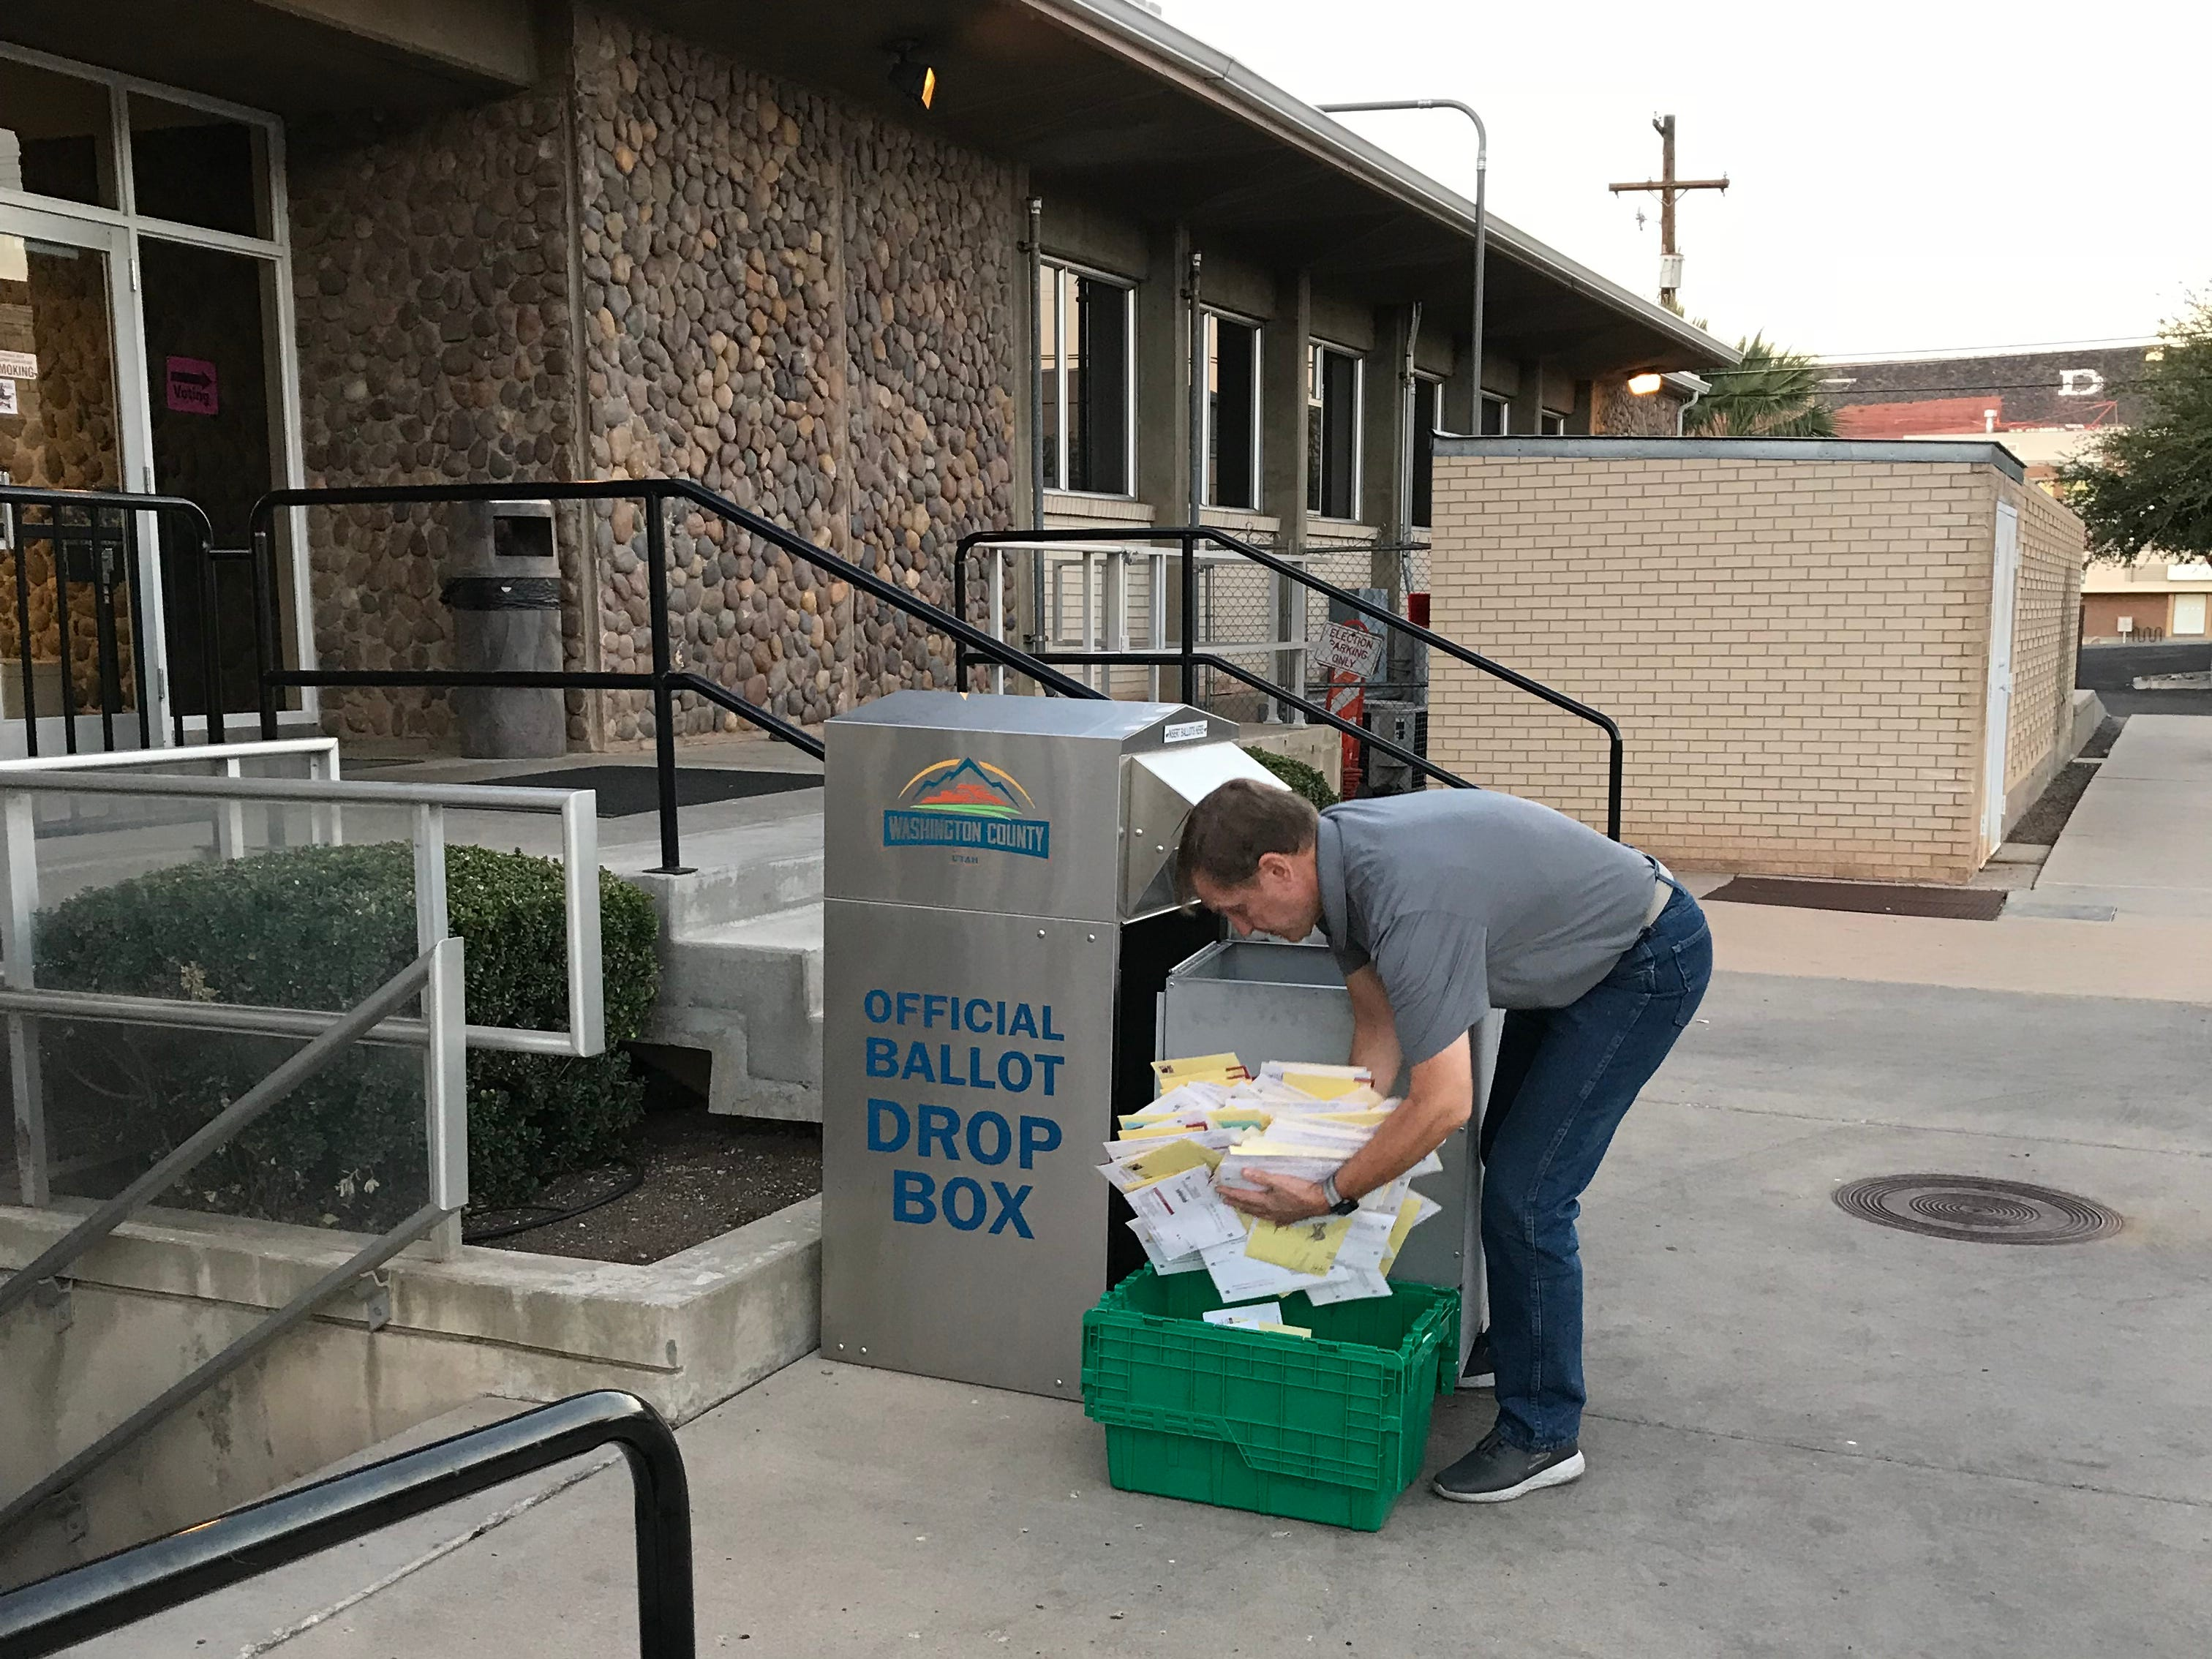 Jerry Rasmussen, deputy auditor for Washington County, collects ballots at the County Administration office in St. George early on Election Day 2018.